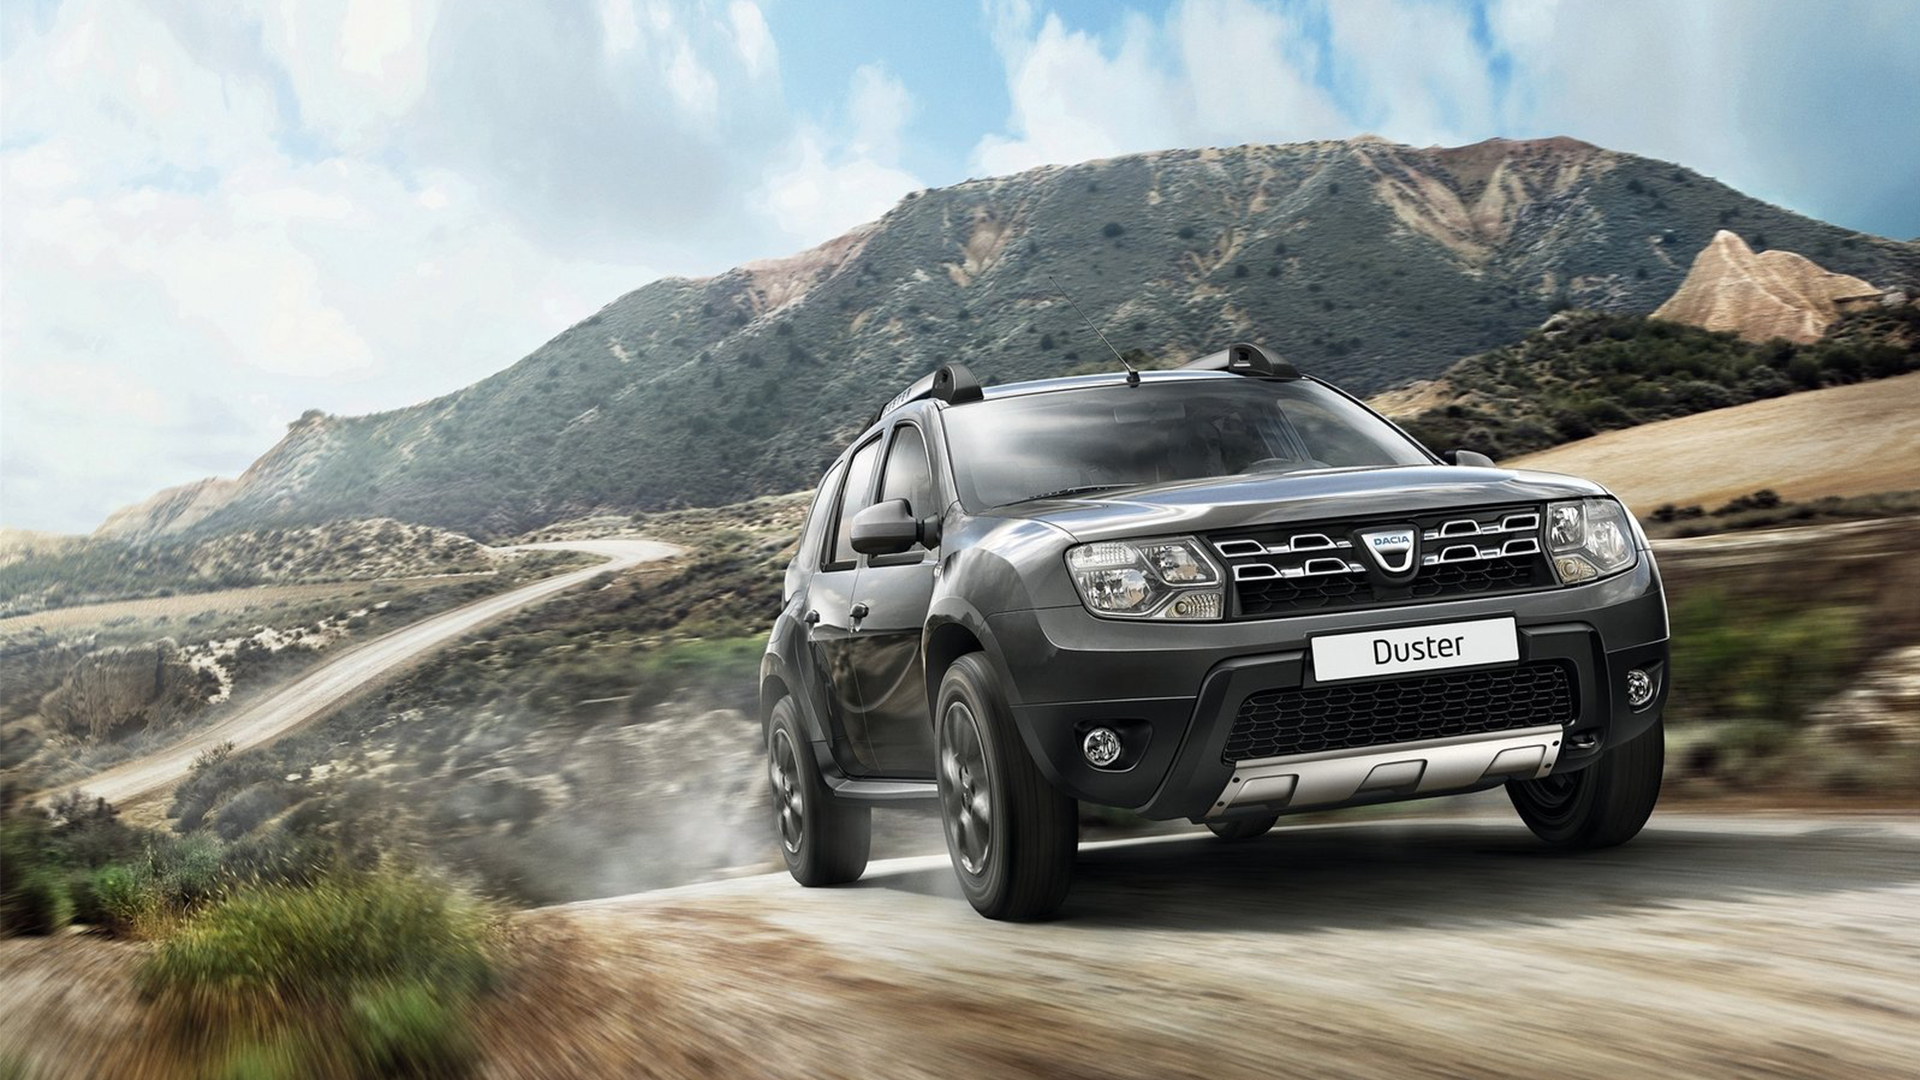 View all posts in Dacia.  2014 Dacia Duster Wallpaper.